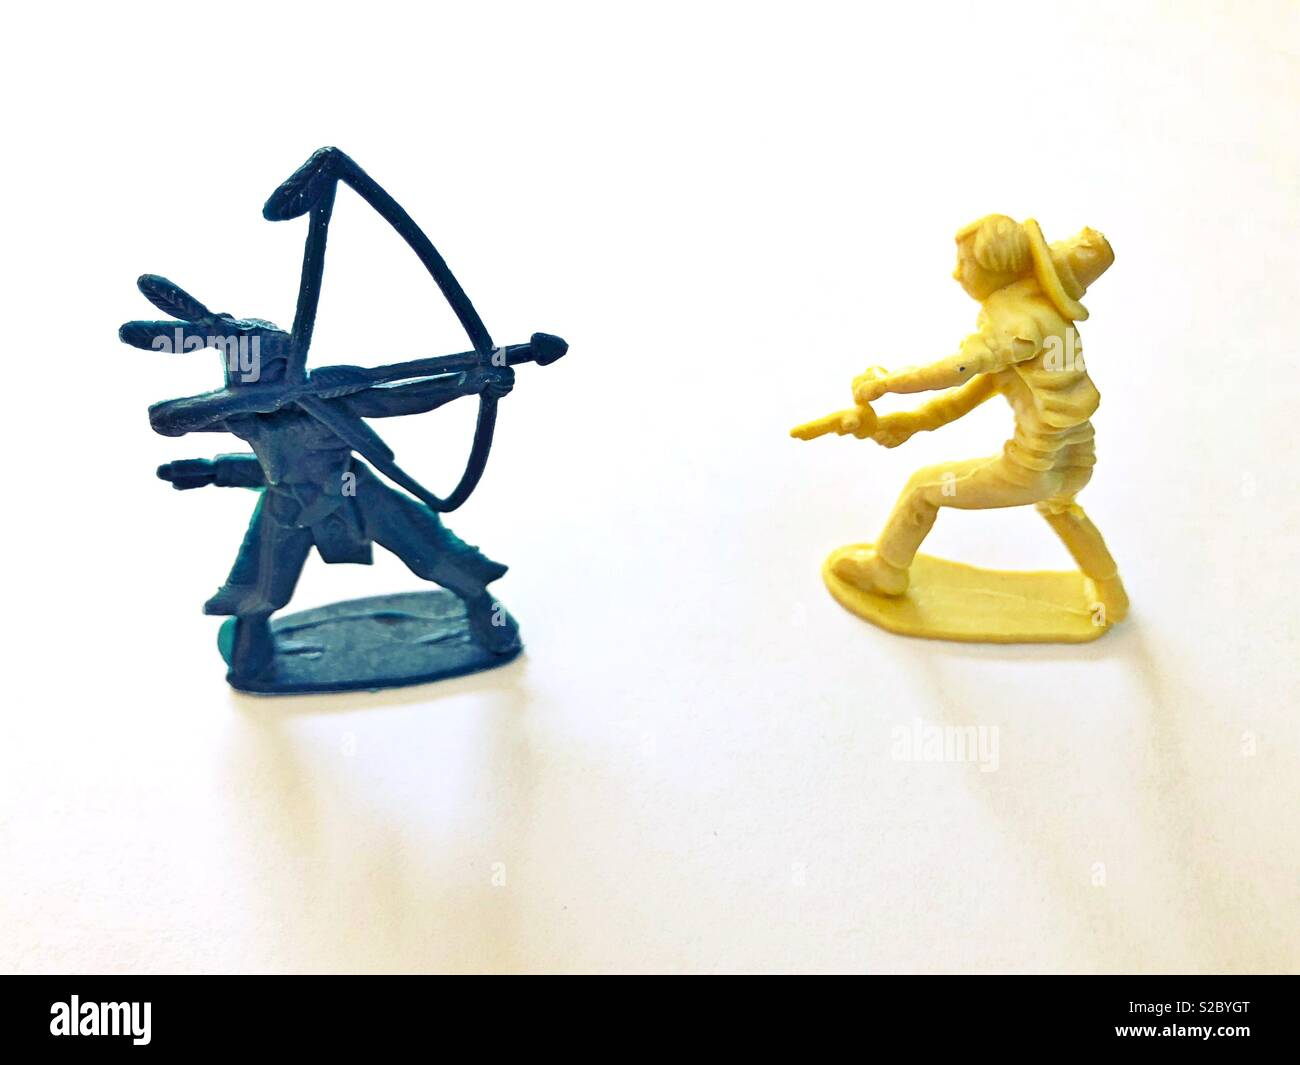 Plastic cowboy and Indian toys at war. - Stock Image